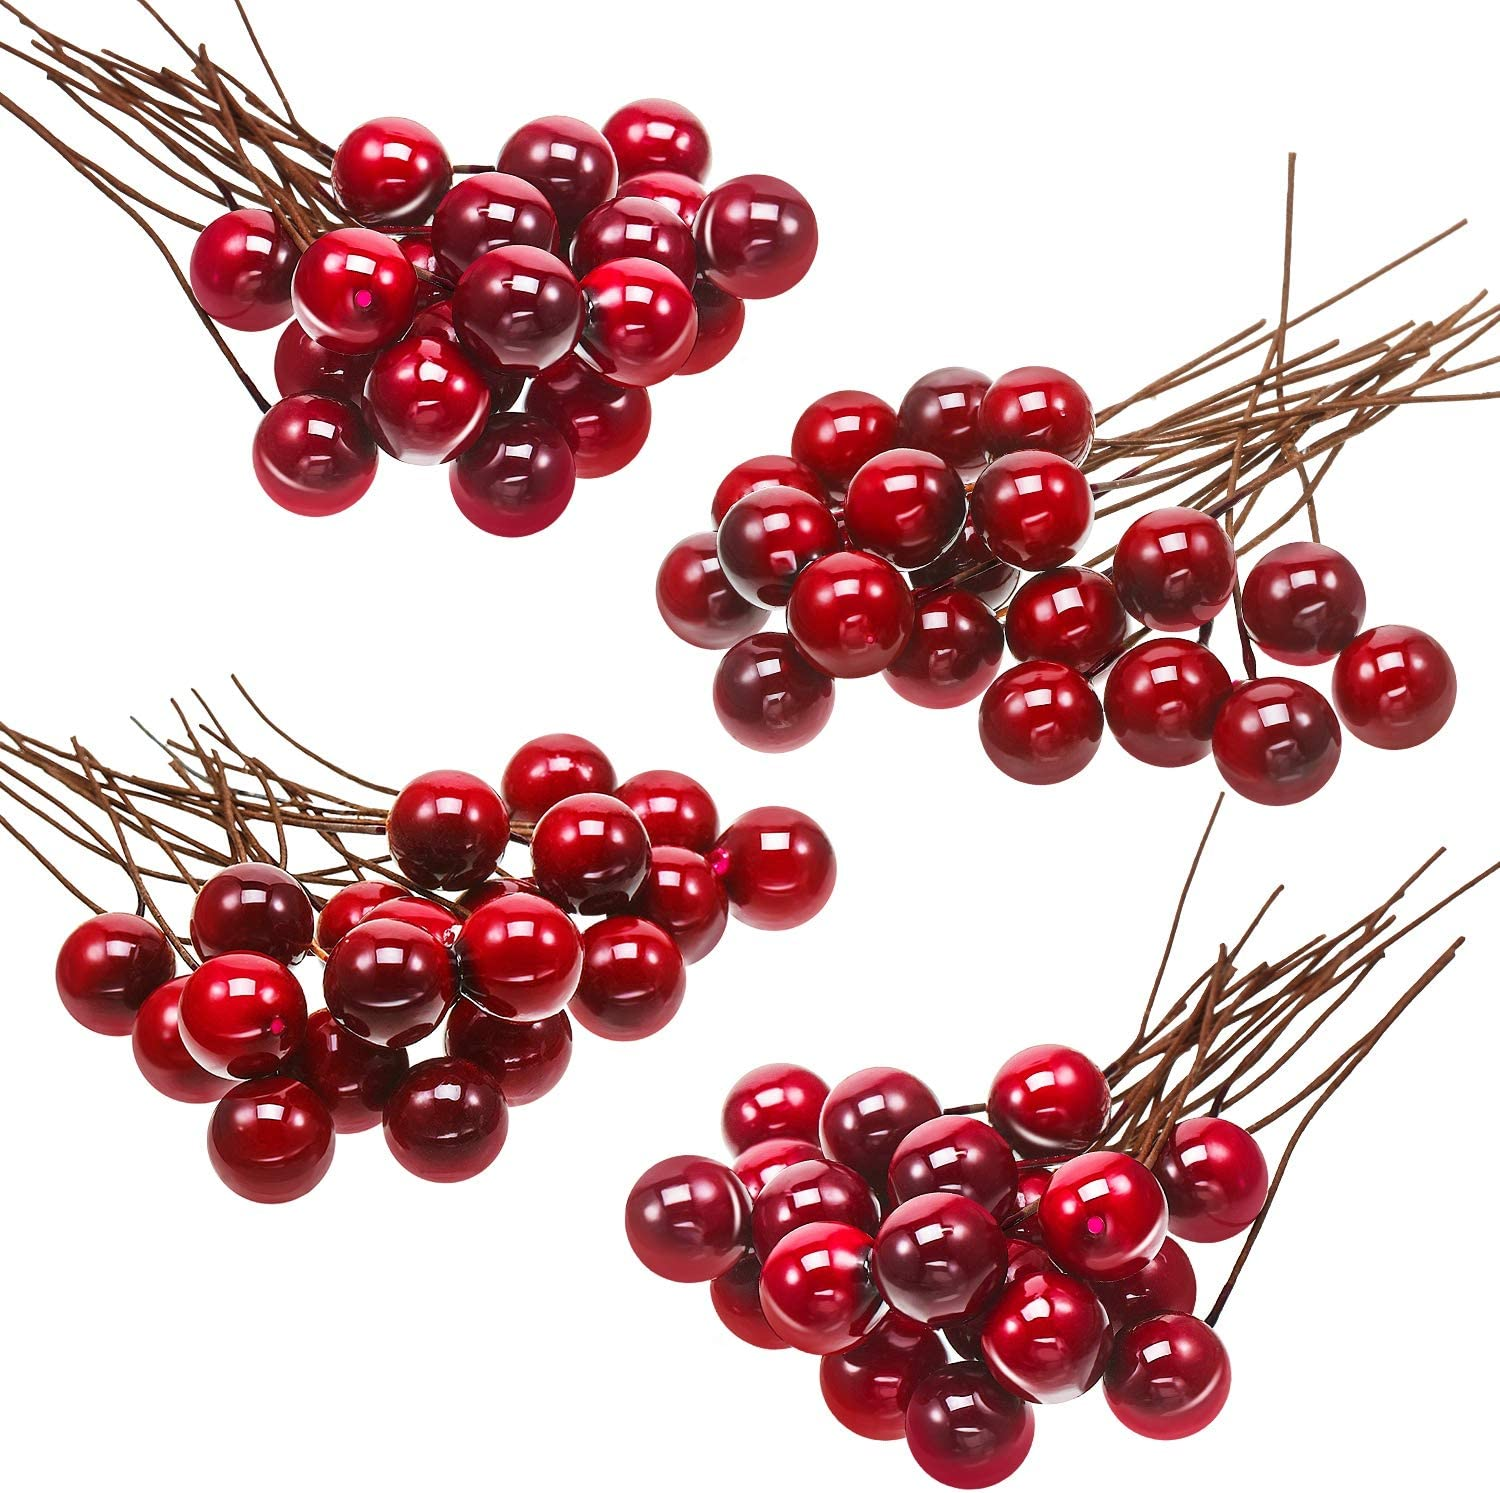 BBTO Artificial Holly Berries, 100 Pieces Mini 10 mm Fake Berries Decor on Wire for Christmas Tree Decorations Flower Wreath DIY Craft Use (Wine Red)